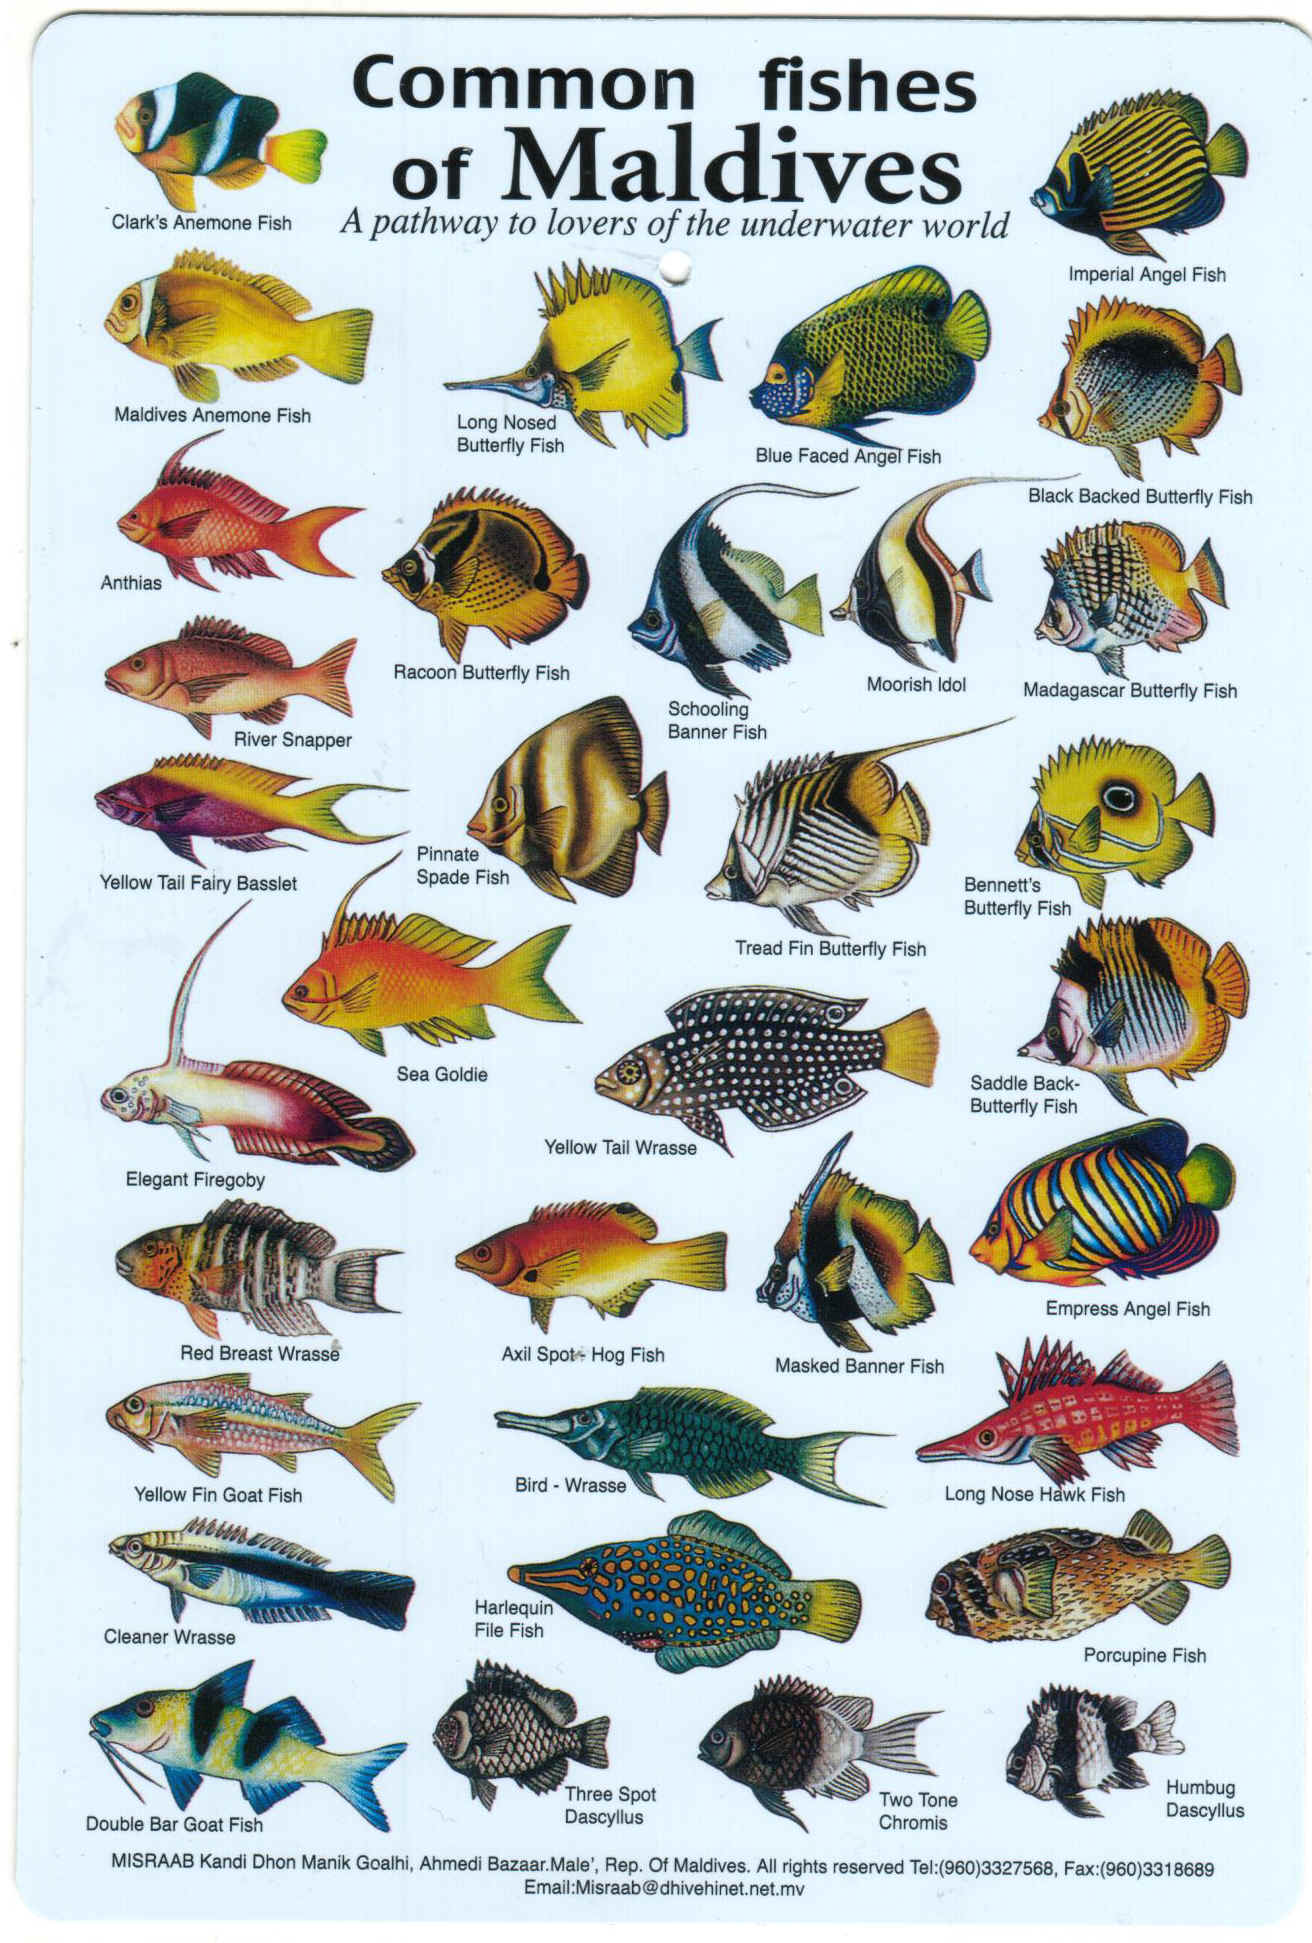 Fishes of the Maldives  Chart